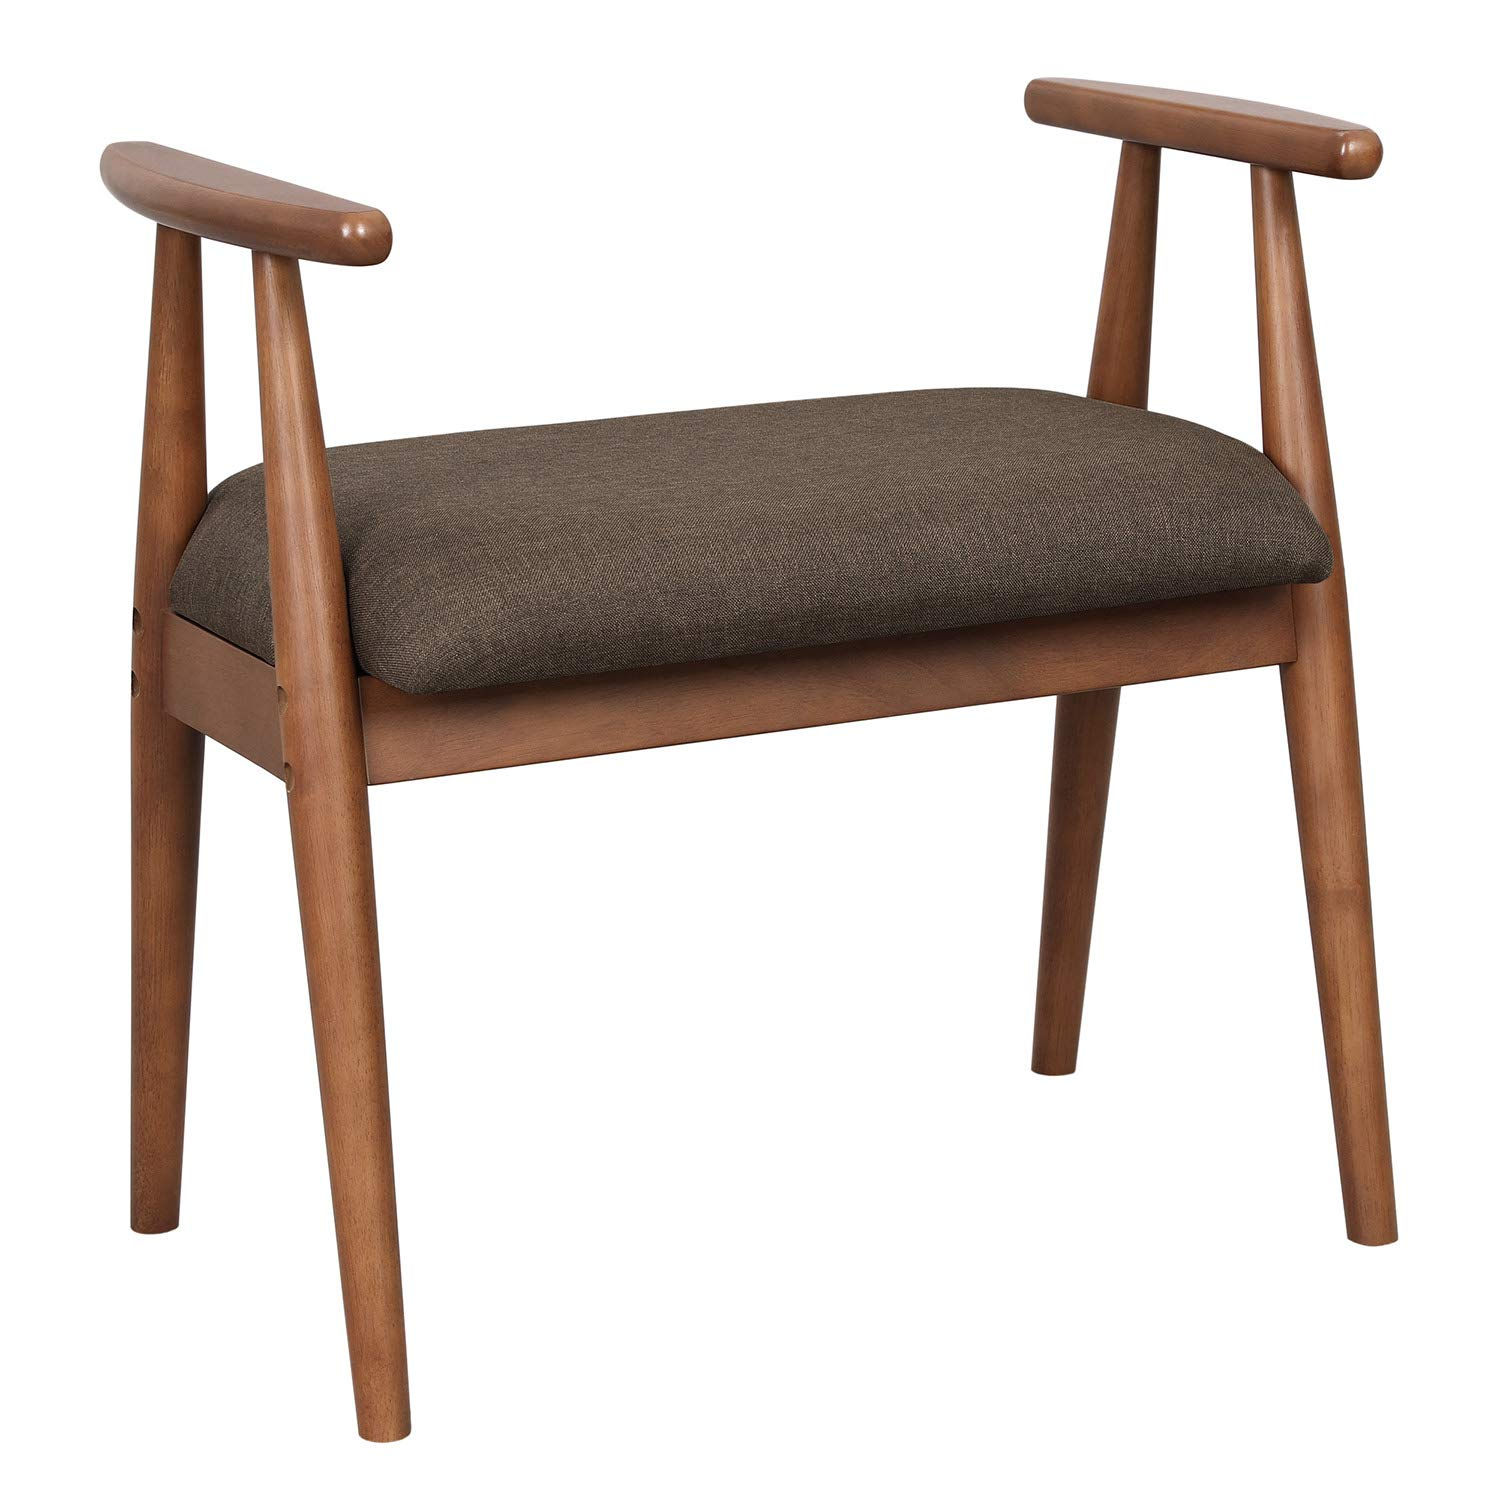 VASAGLE Solid Wood Shoe Bench, Upholstered Vanity Stool with Armrests, Load Capacity 286 lb, Mid-Century Style, for Entryway, Bedroom, Living Room, Saddle Brown URSB01BR